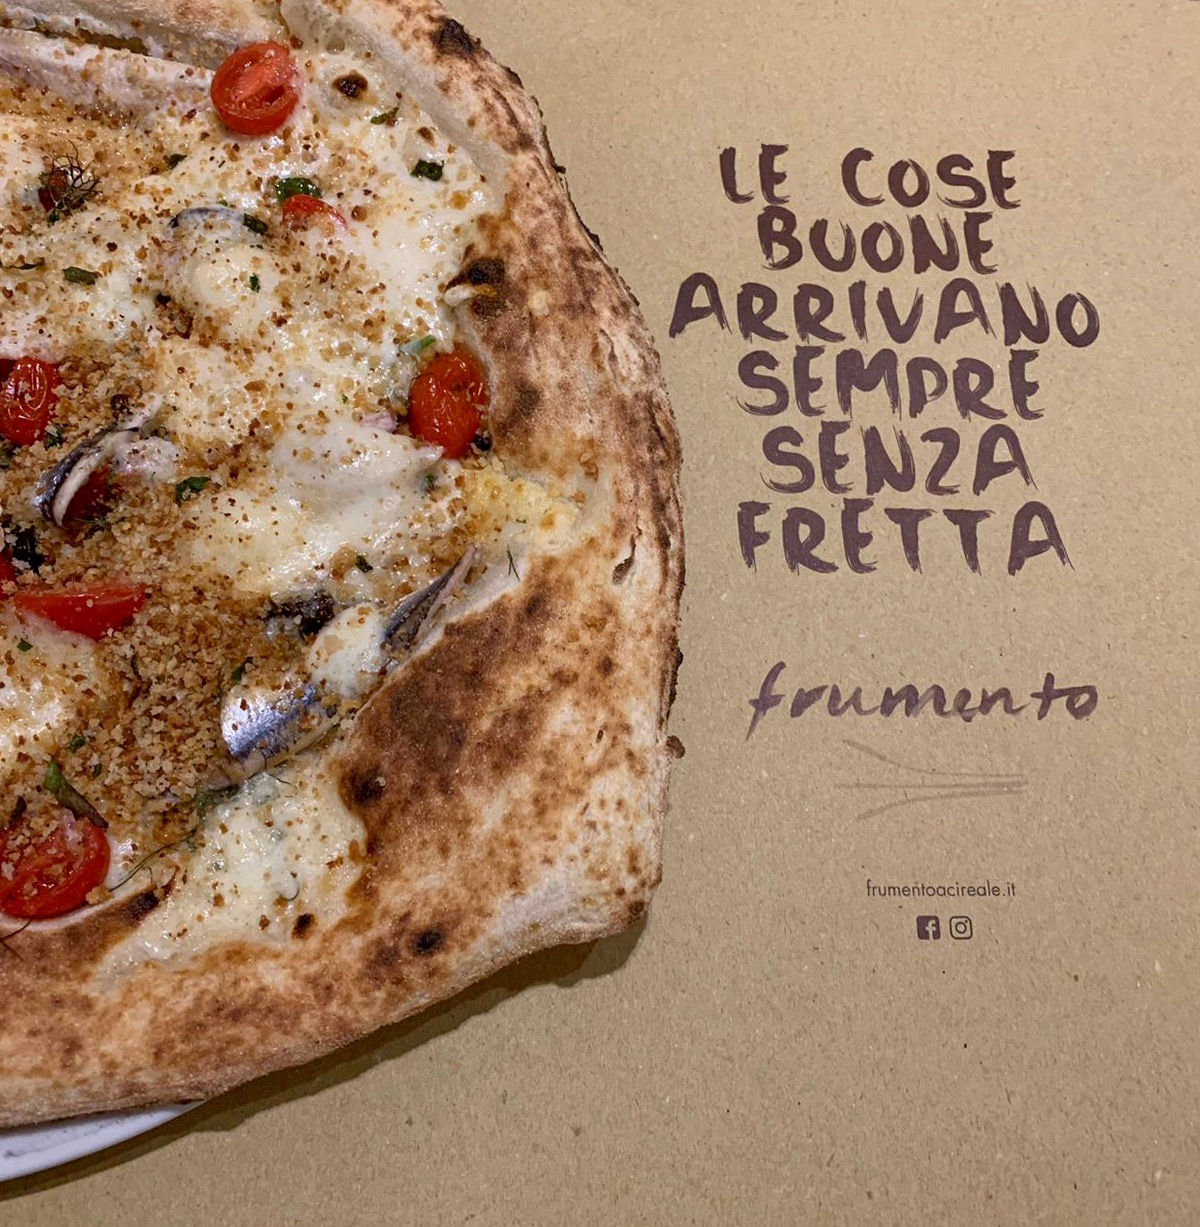 50 Top Pizza 2019 Awards: Frumento è 1° tra le pizzerie siciliane e 39°su scala nazionale